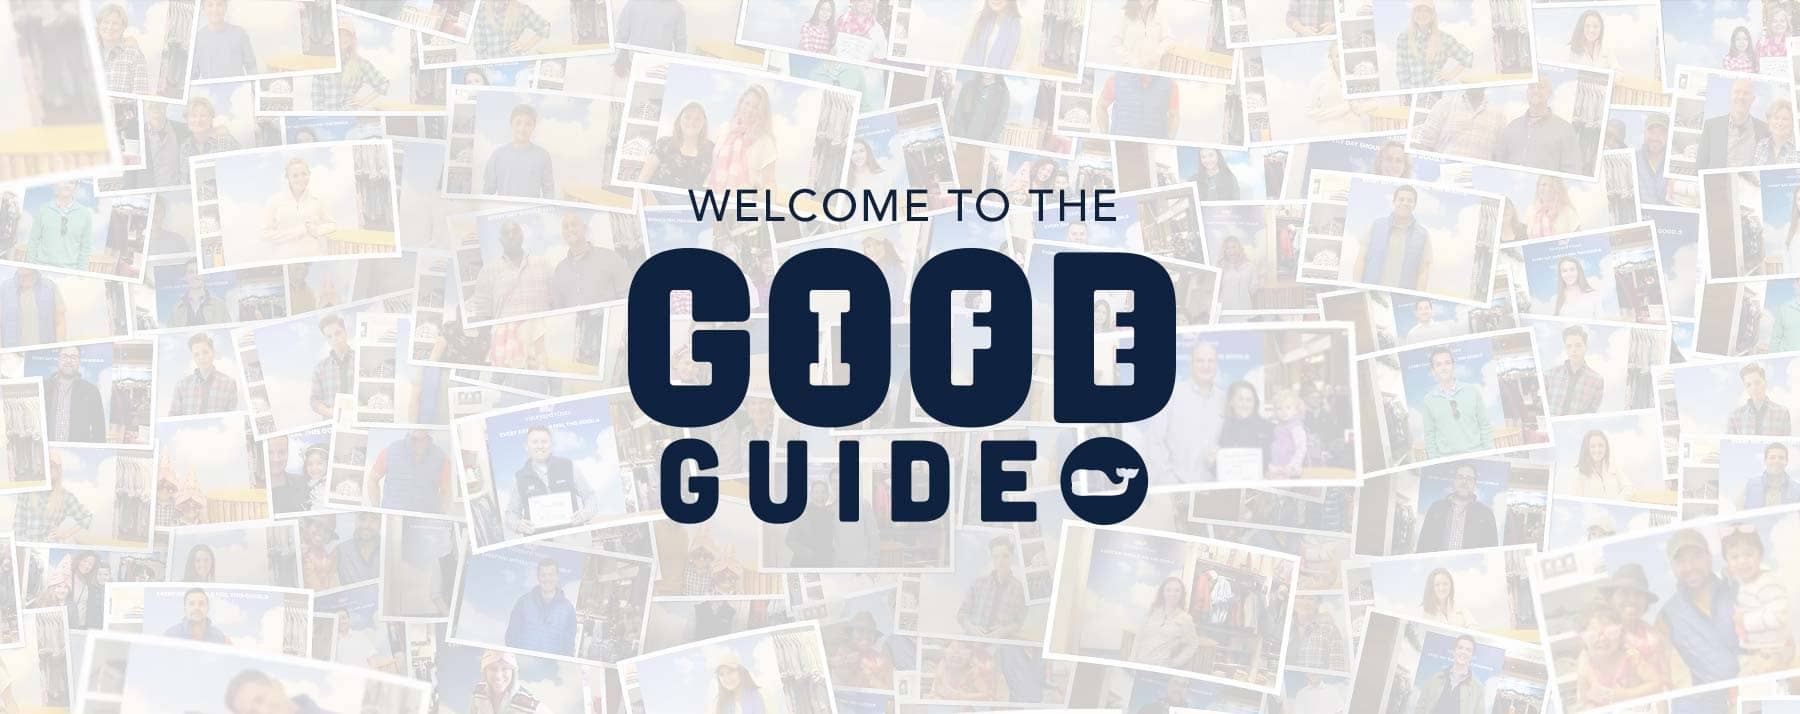 Welcome to the Good Life Guide Page. Scroll through to learn about our Good Life Guides